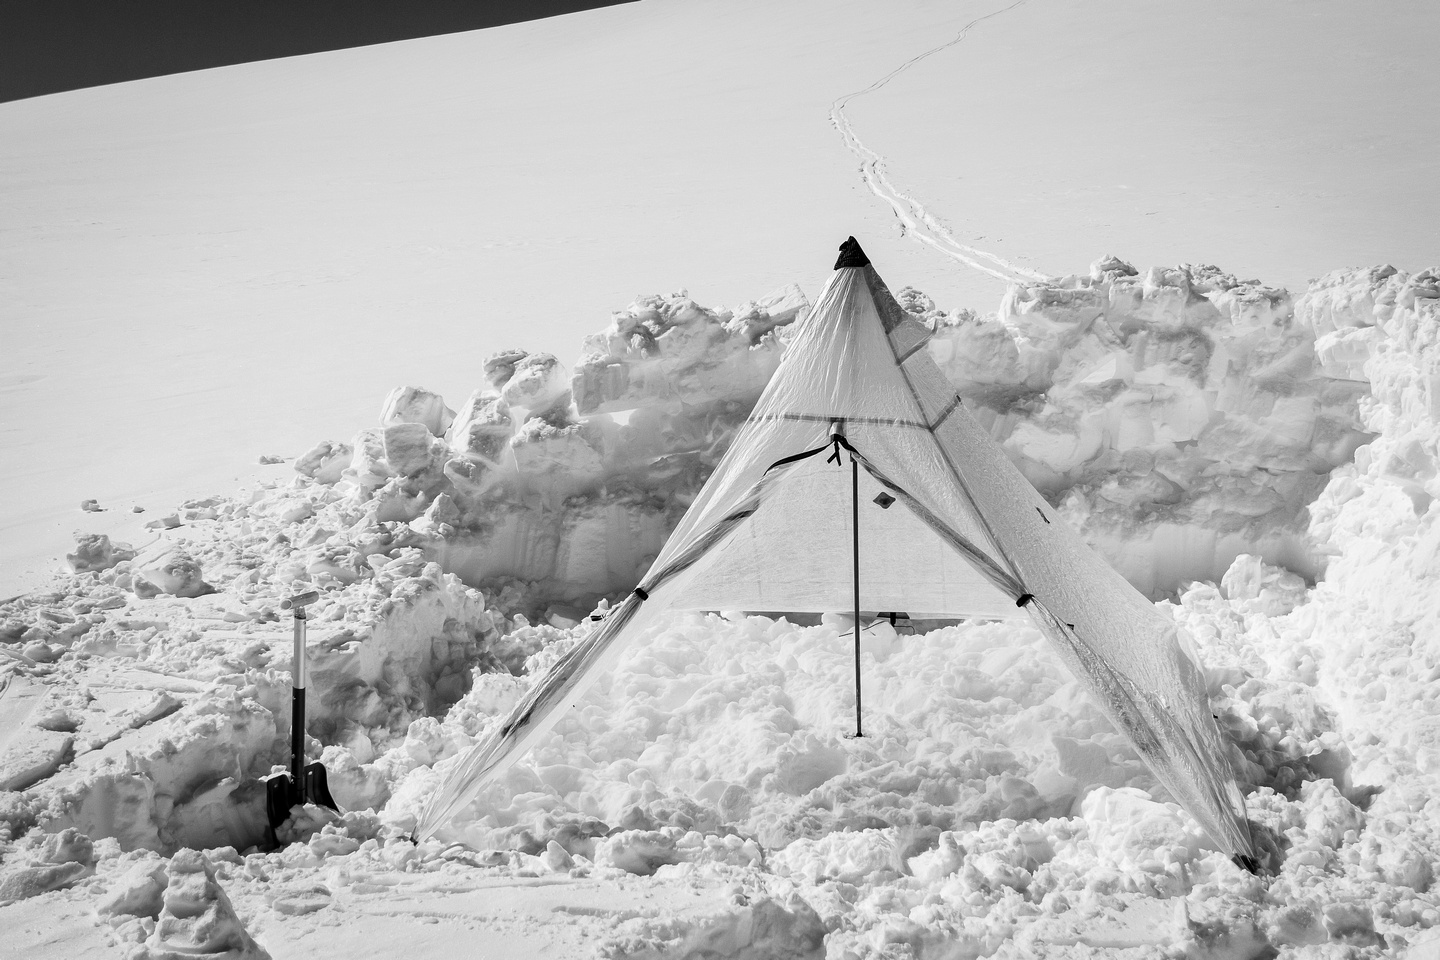 The HMG Ultra Mid II is only 499 grams but is the perfect icefields shelter even in strong winds.